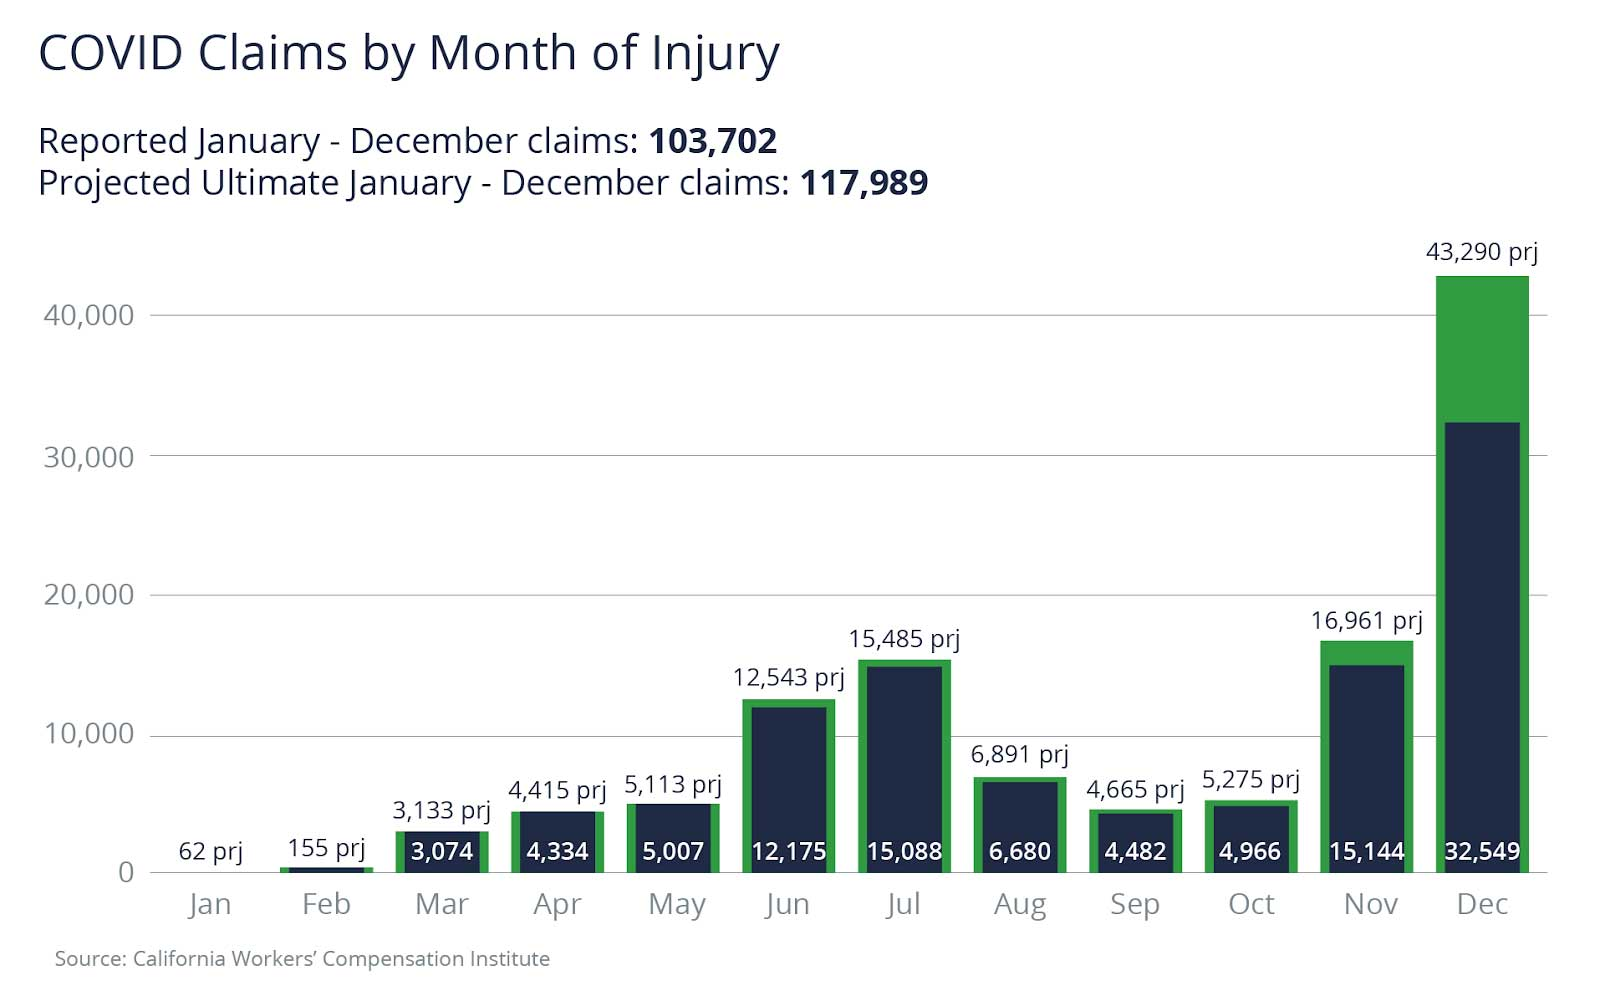 COVID claims spike post-holiday with reported January-December claims of 103, 702